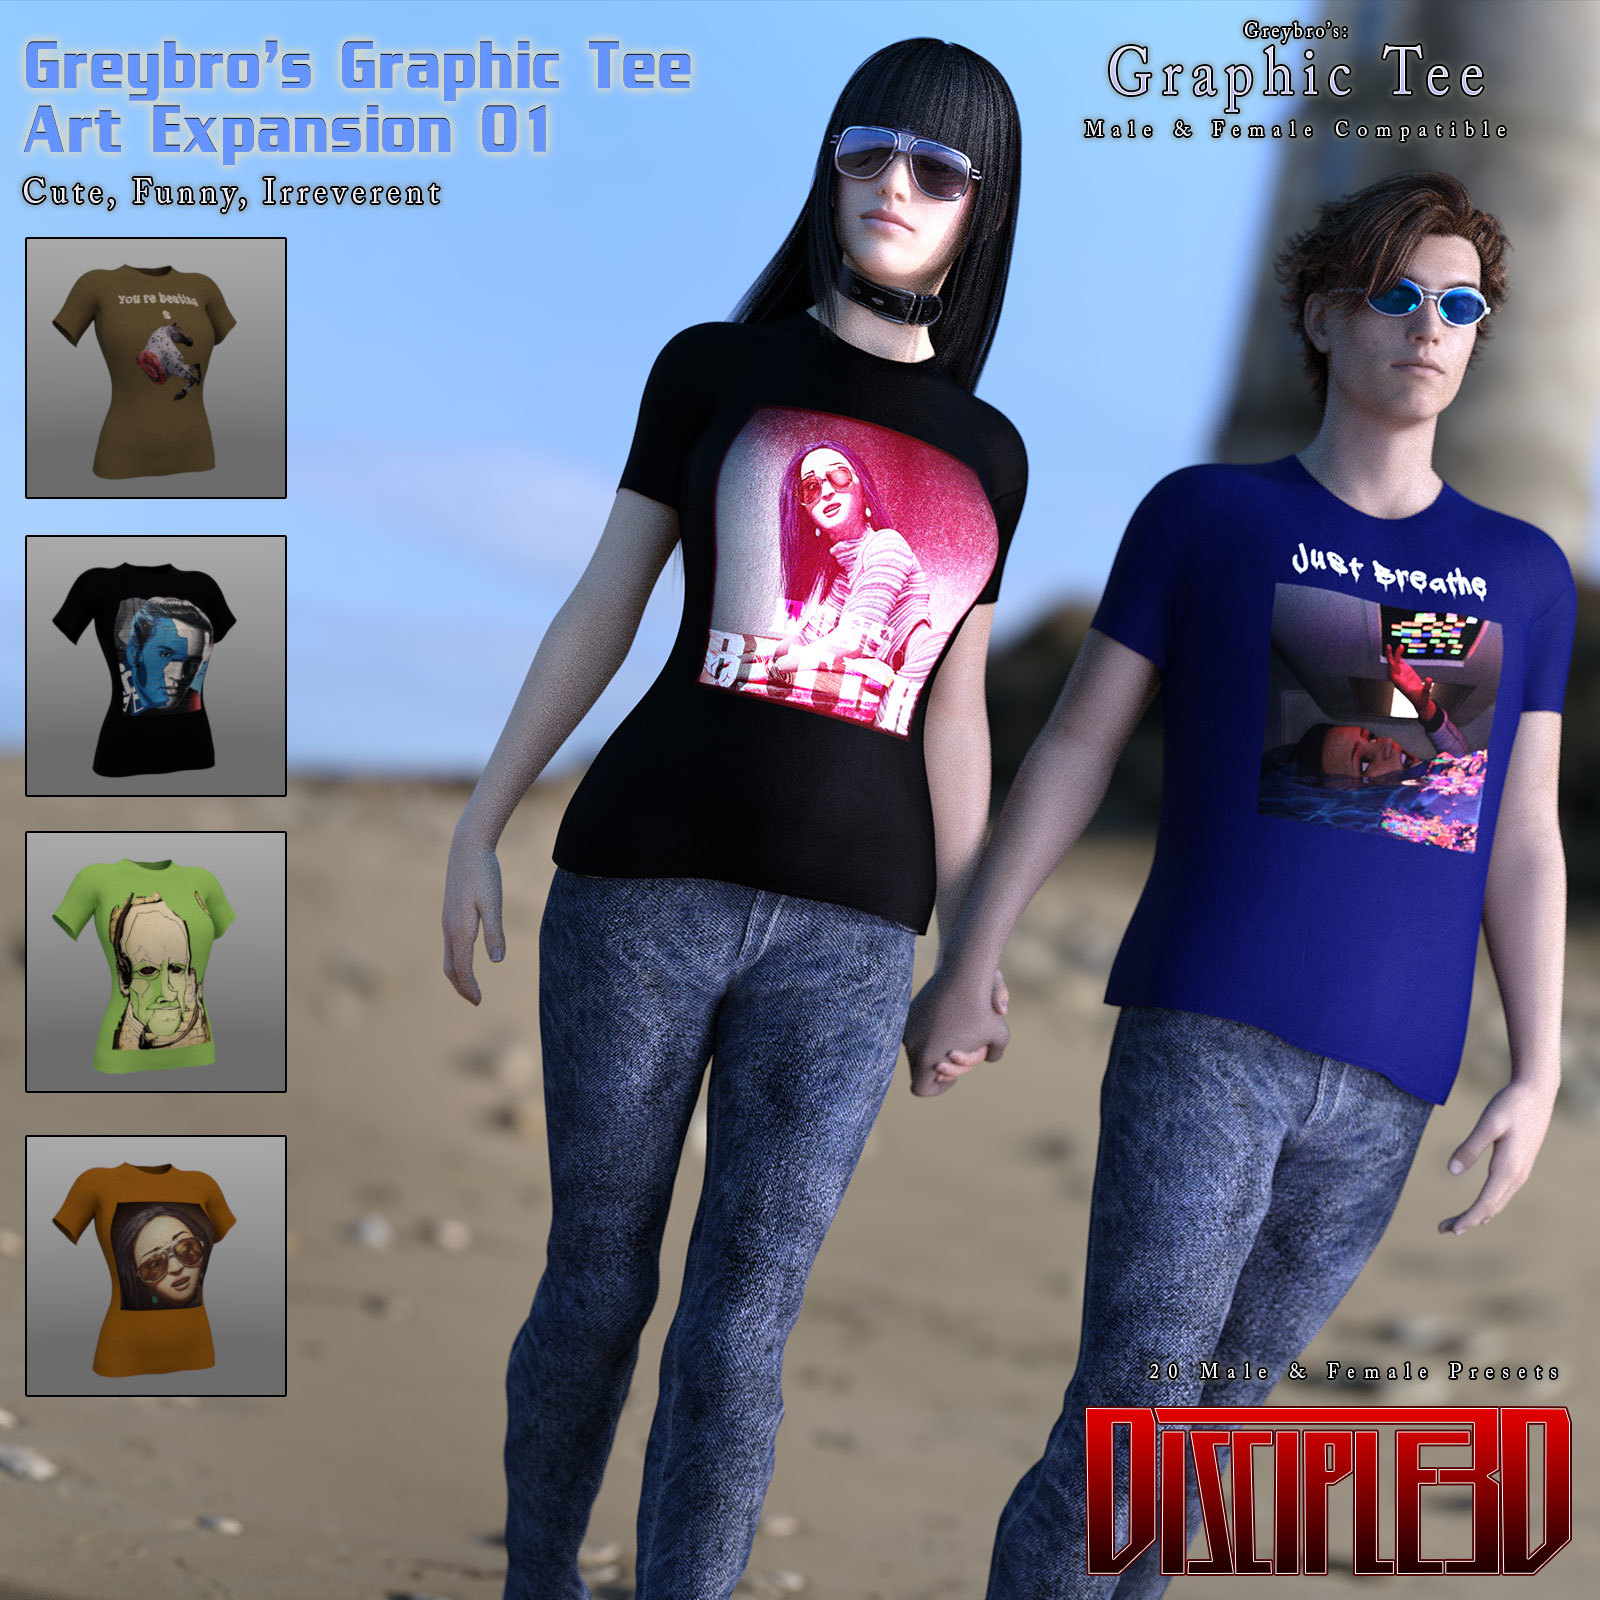 Greybro's Graphic Tee Art Expansion 01